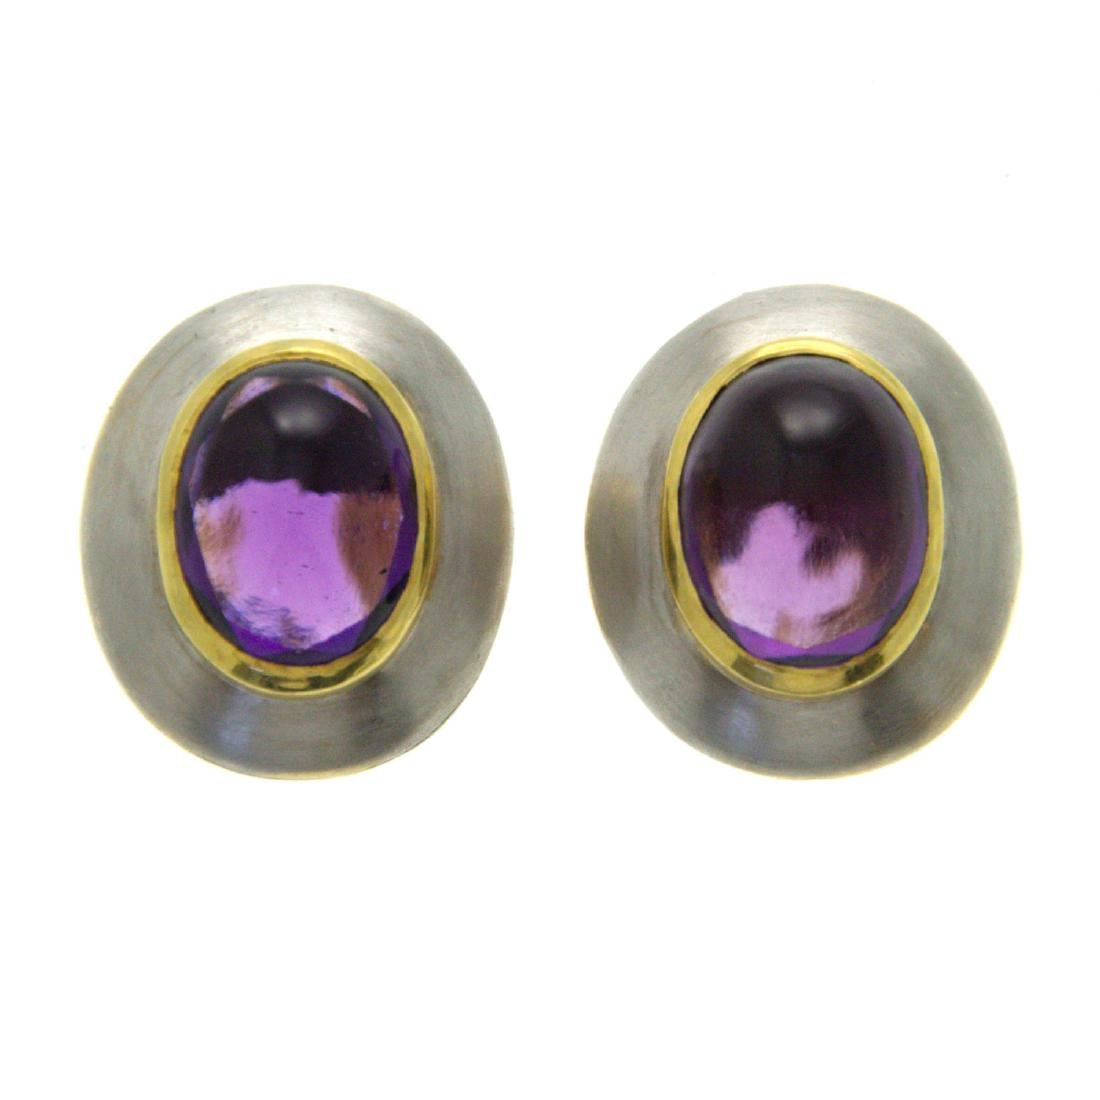 H. Stern Pair of 18k Yellow and White Gold Amethyst